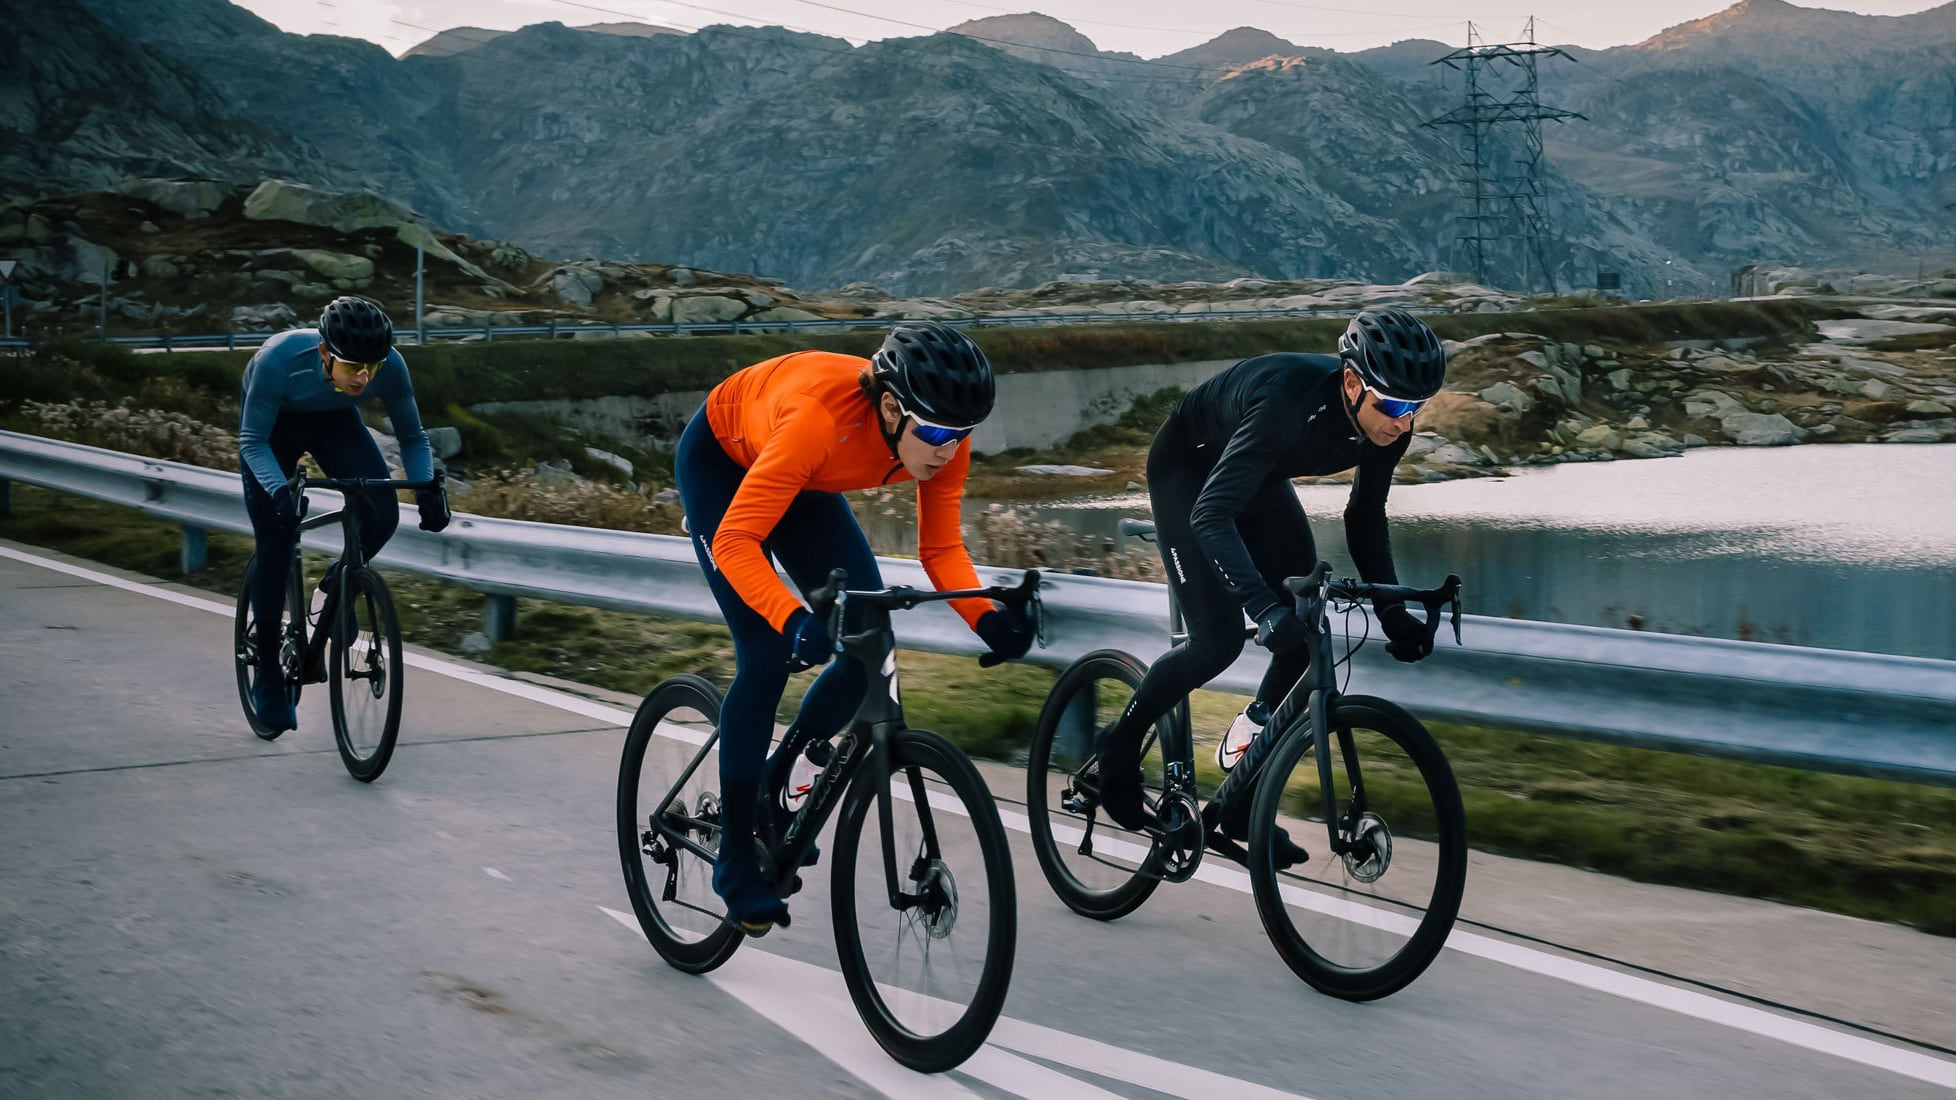 Thermal Jersey vs. Windproof Jersey